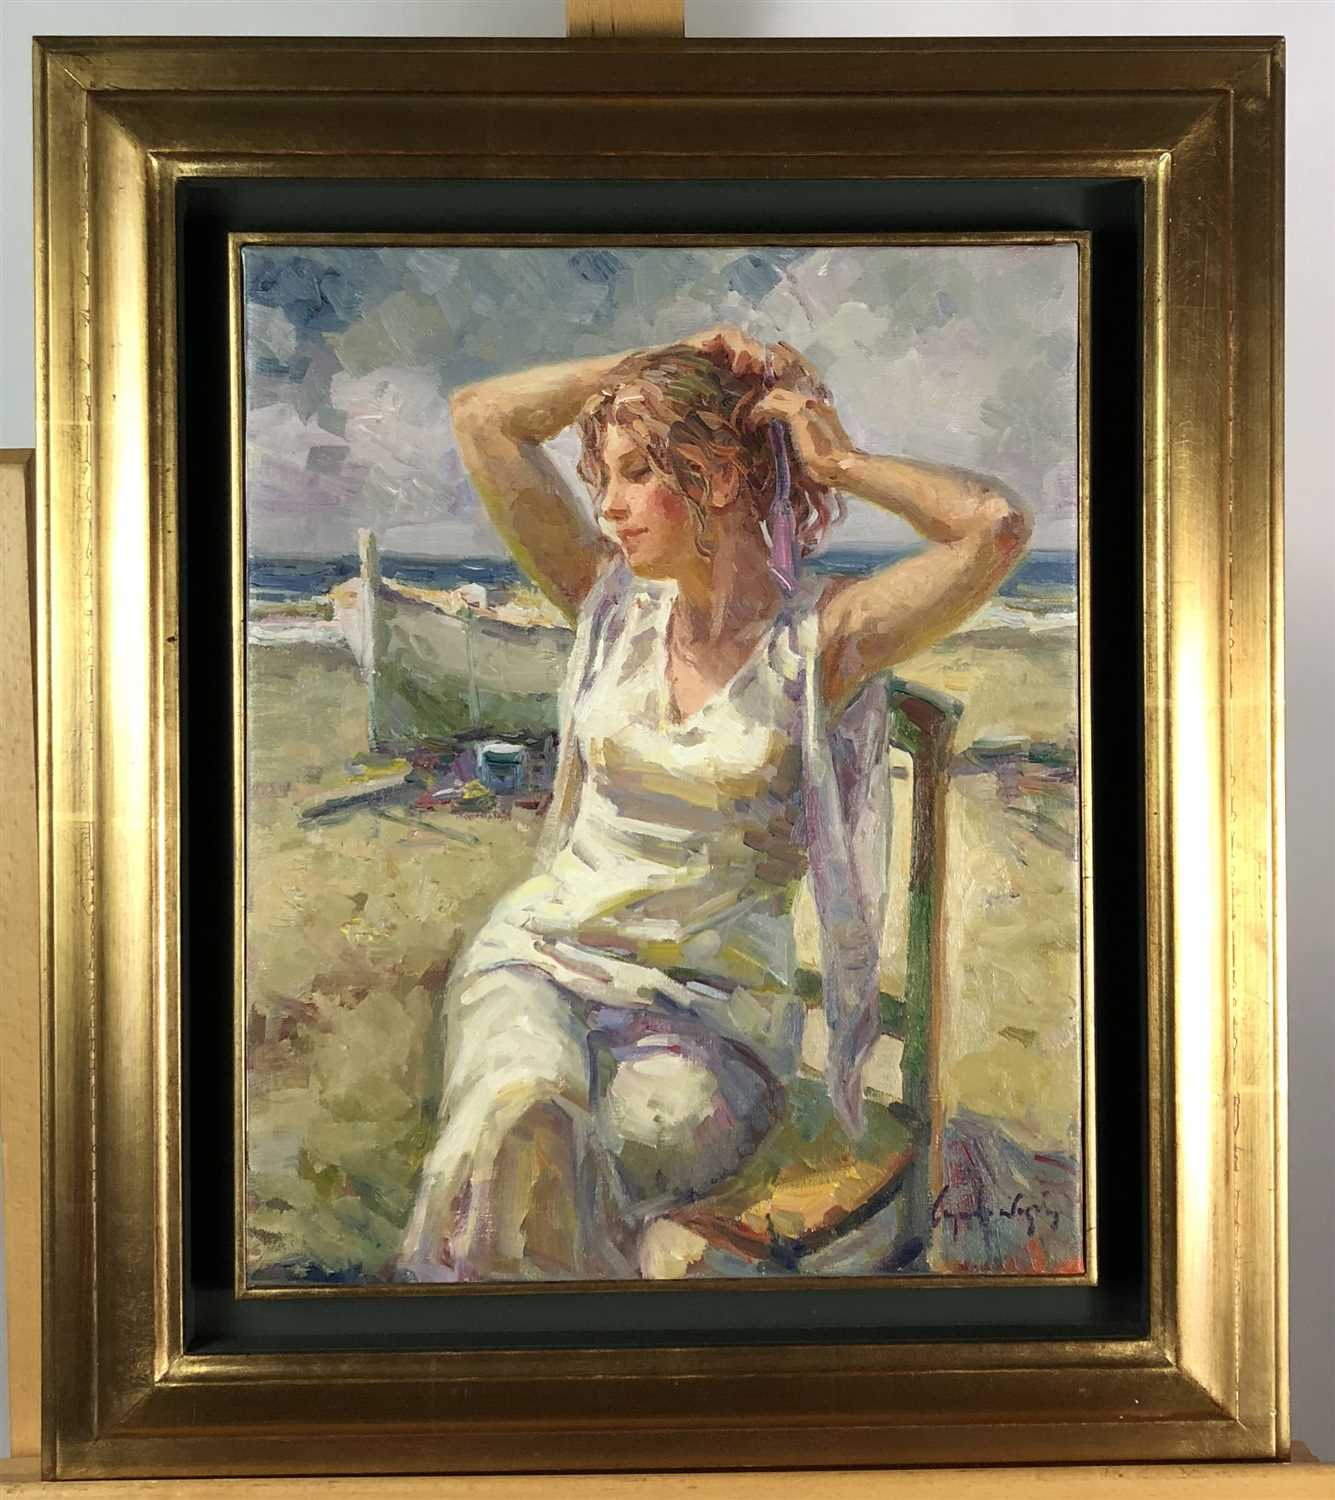 Lot 80-Ricardo Cejudo Nogales, study of a young girl